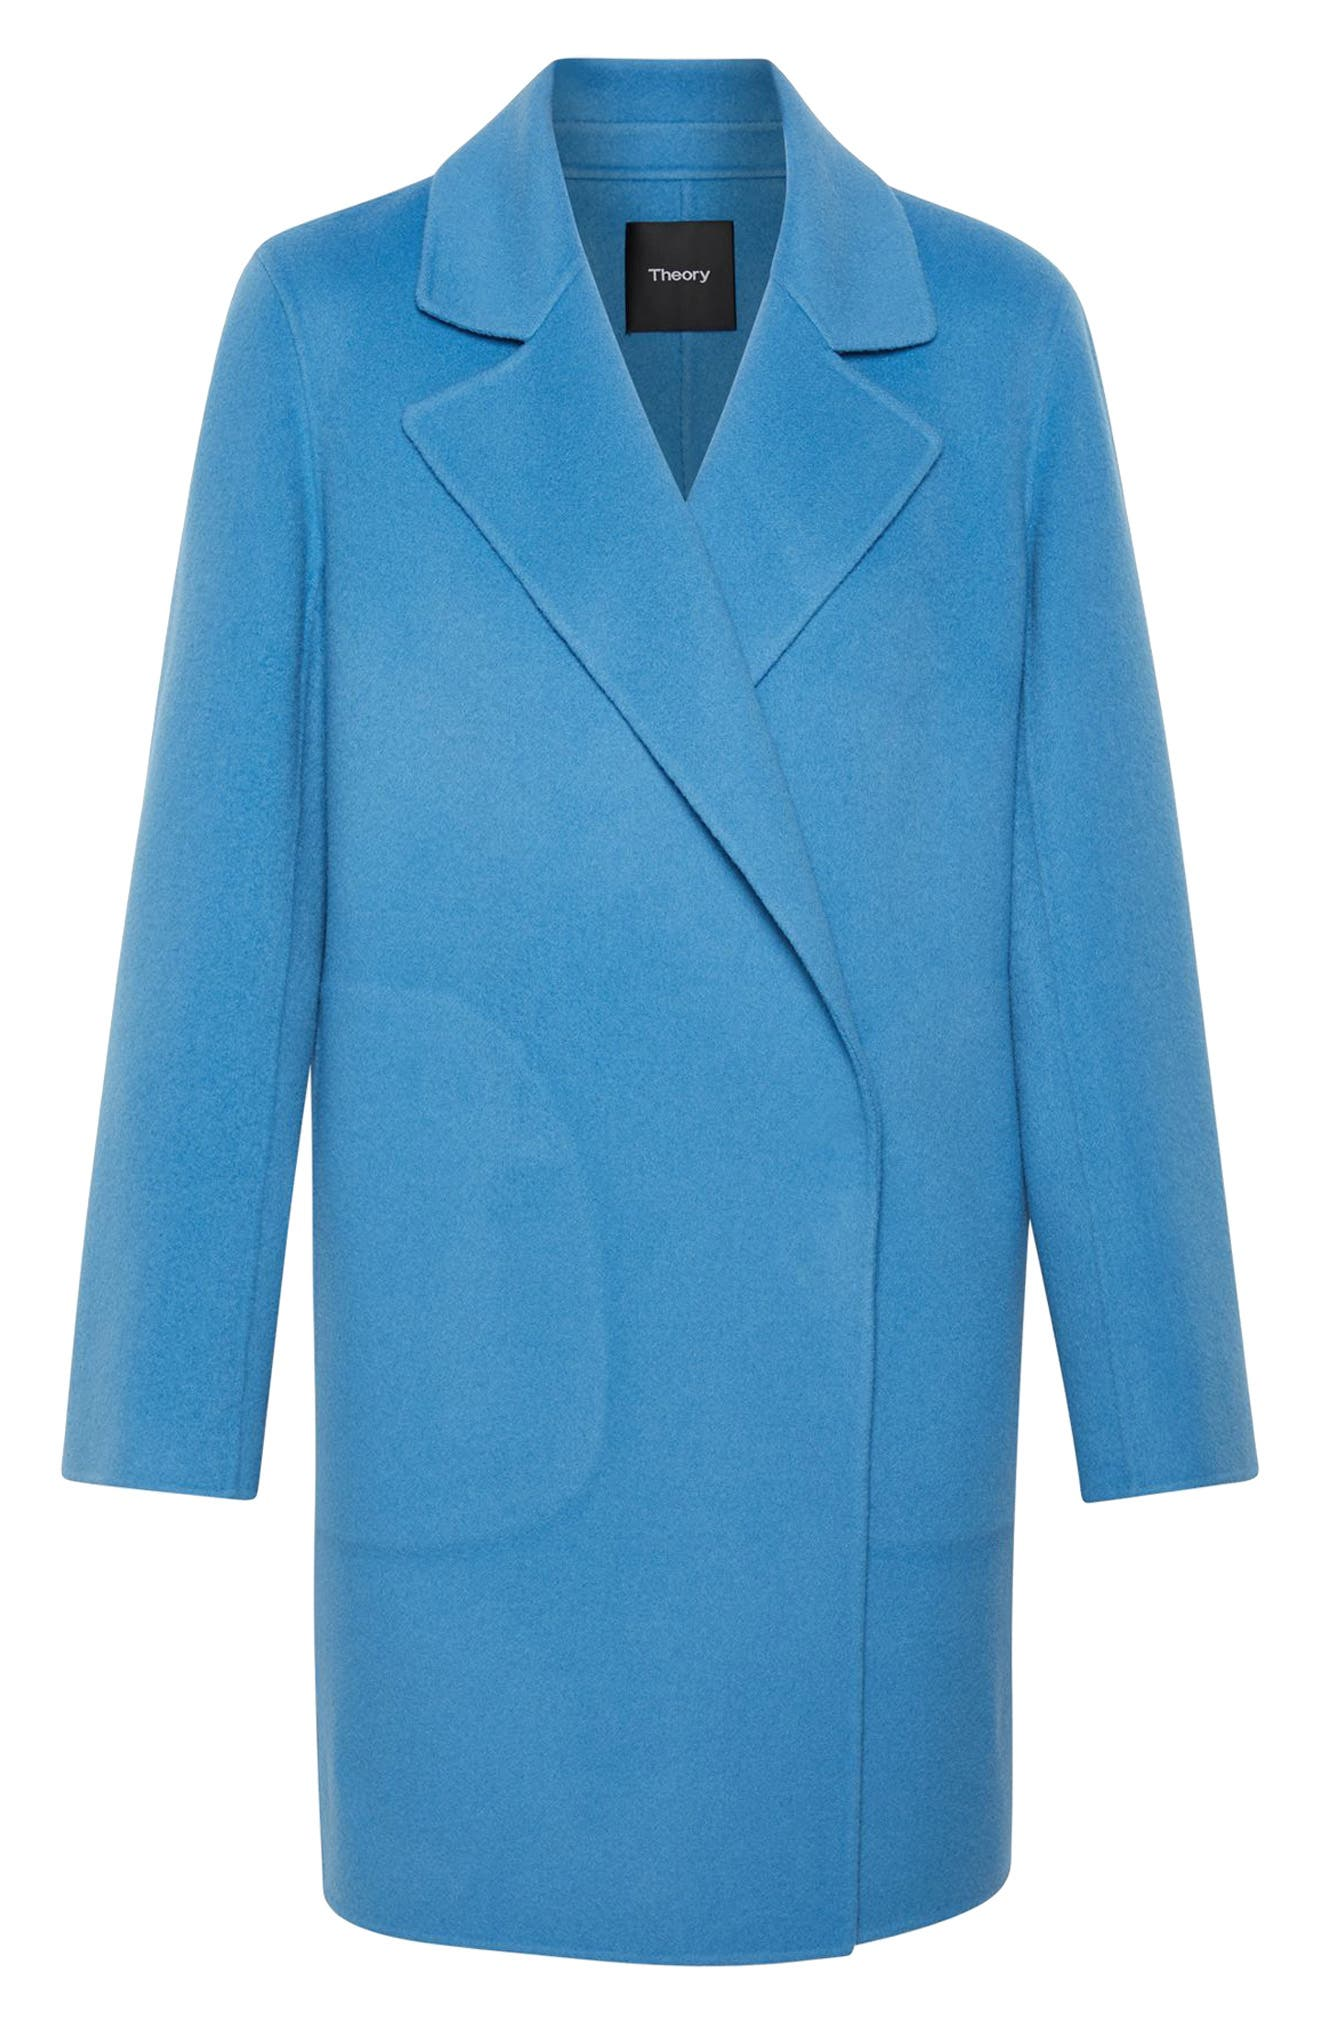 THEORY, Wool & Cashmere Boy Coat, Alternate thumbnail 5, color, 488